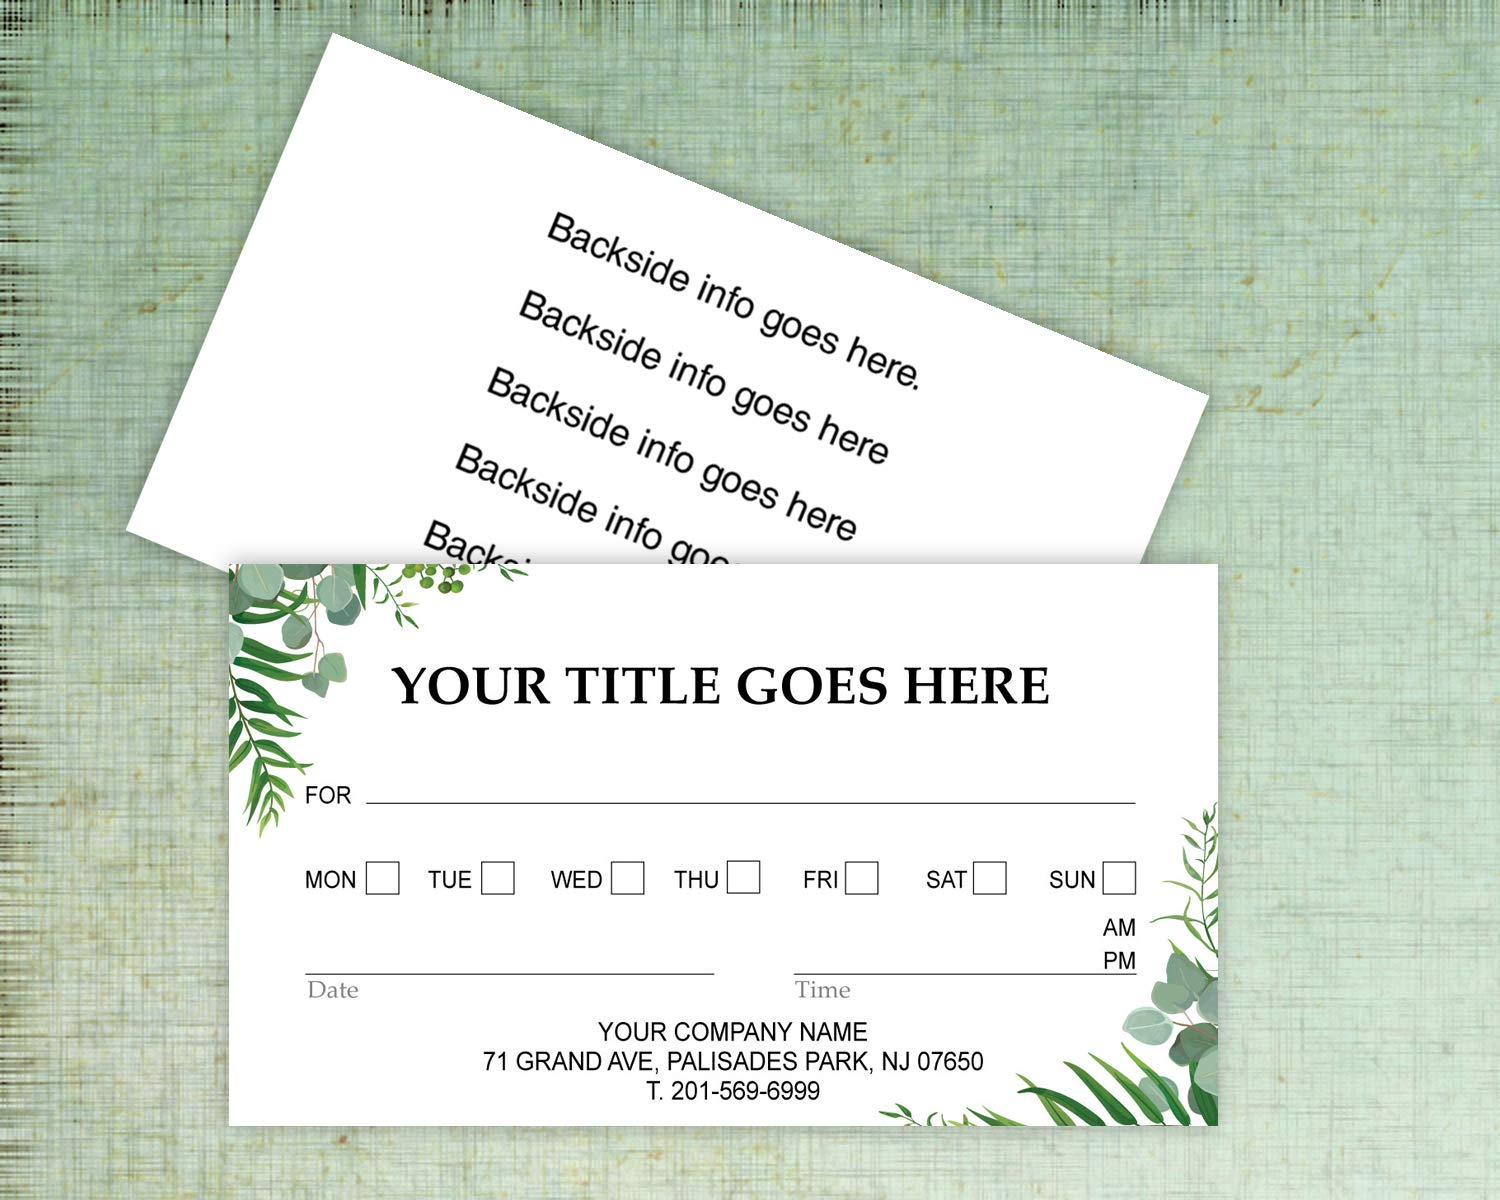 Custom Appointment Reminder Business Cards 500 Full color - Customize (front&back) - Appointment reminder card on Front, Your business card info on backside -Offset Printing, Made in The USA (Green) by IMPACTONLINEPRINTING (Image #2)